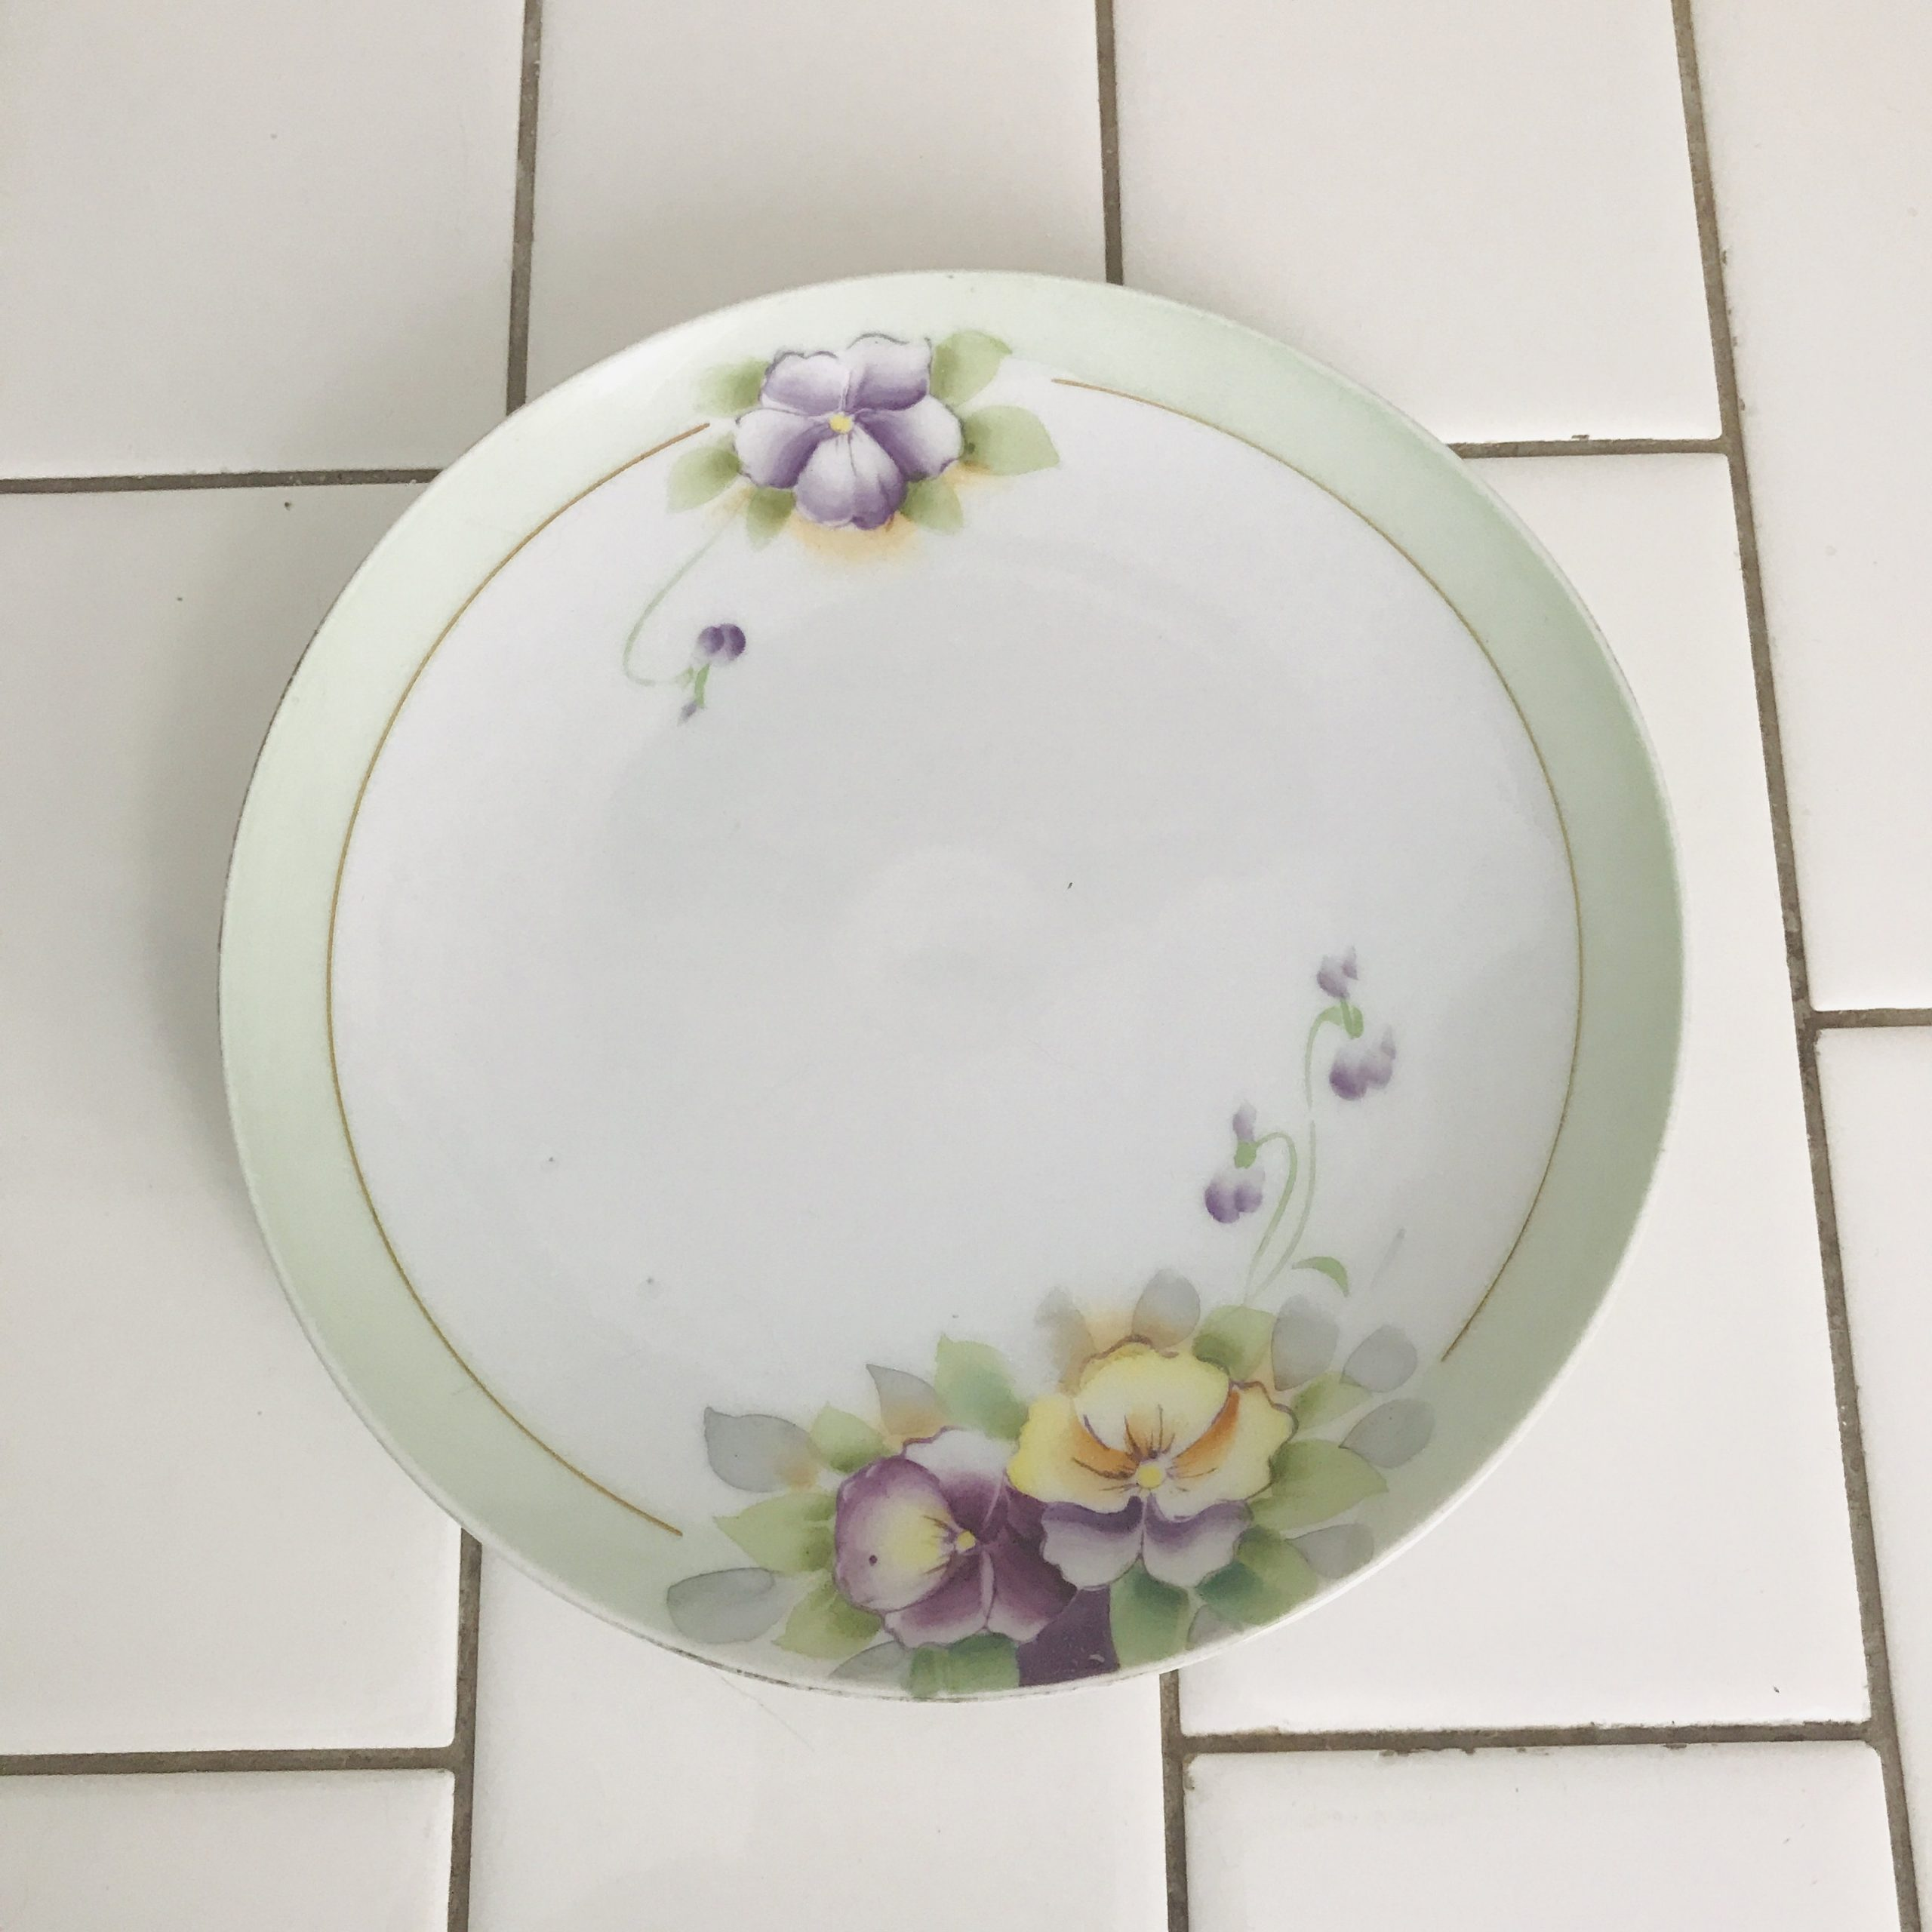 Vintage Plate Meito Japan Hand Painted Floral Display Collectible Farmhouse Cottage Decor Hutschenreuther Carol S True Vintage And Antiques